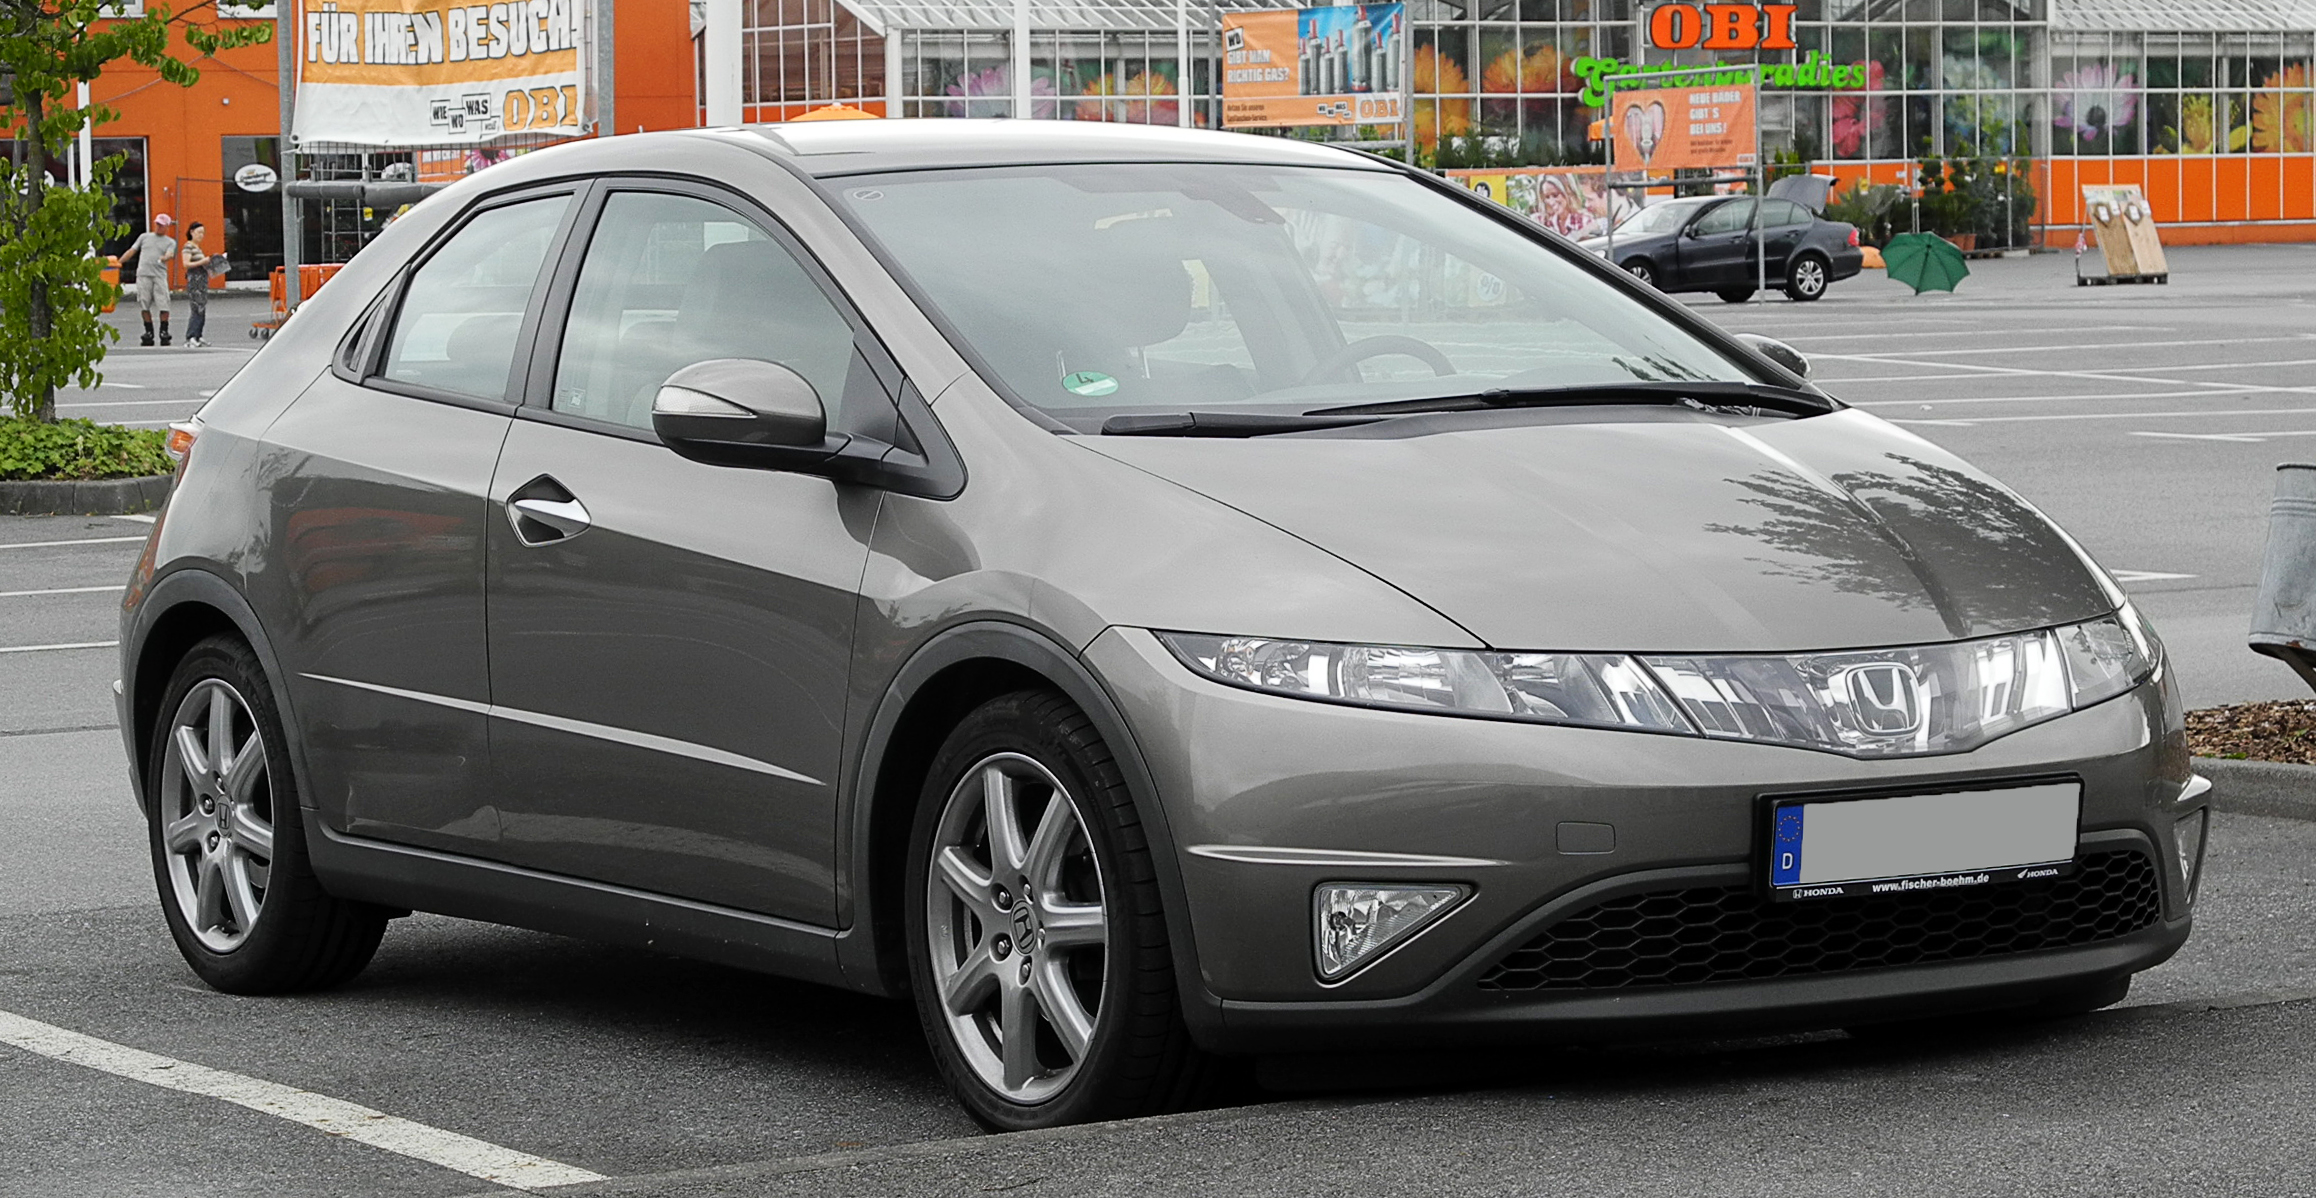 honda civic viii 2009 #4